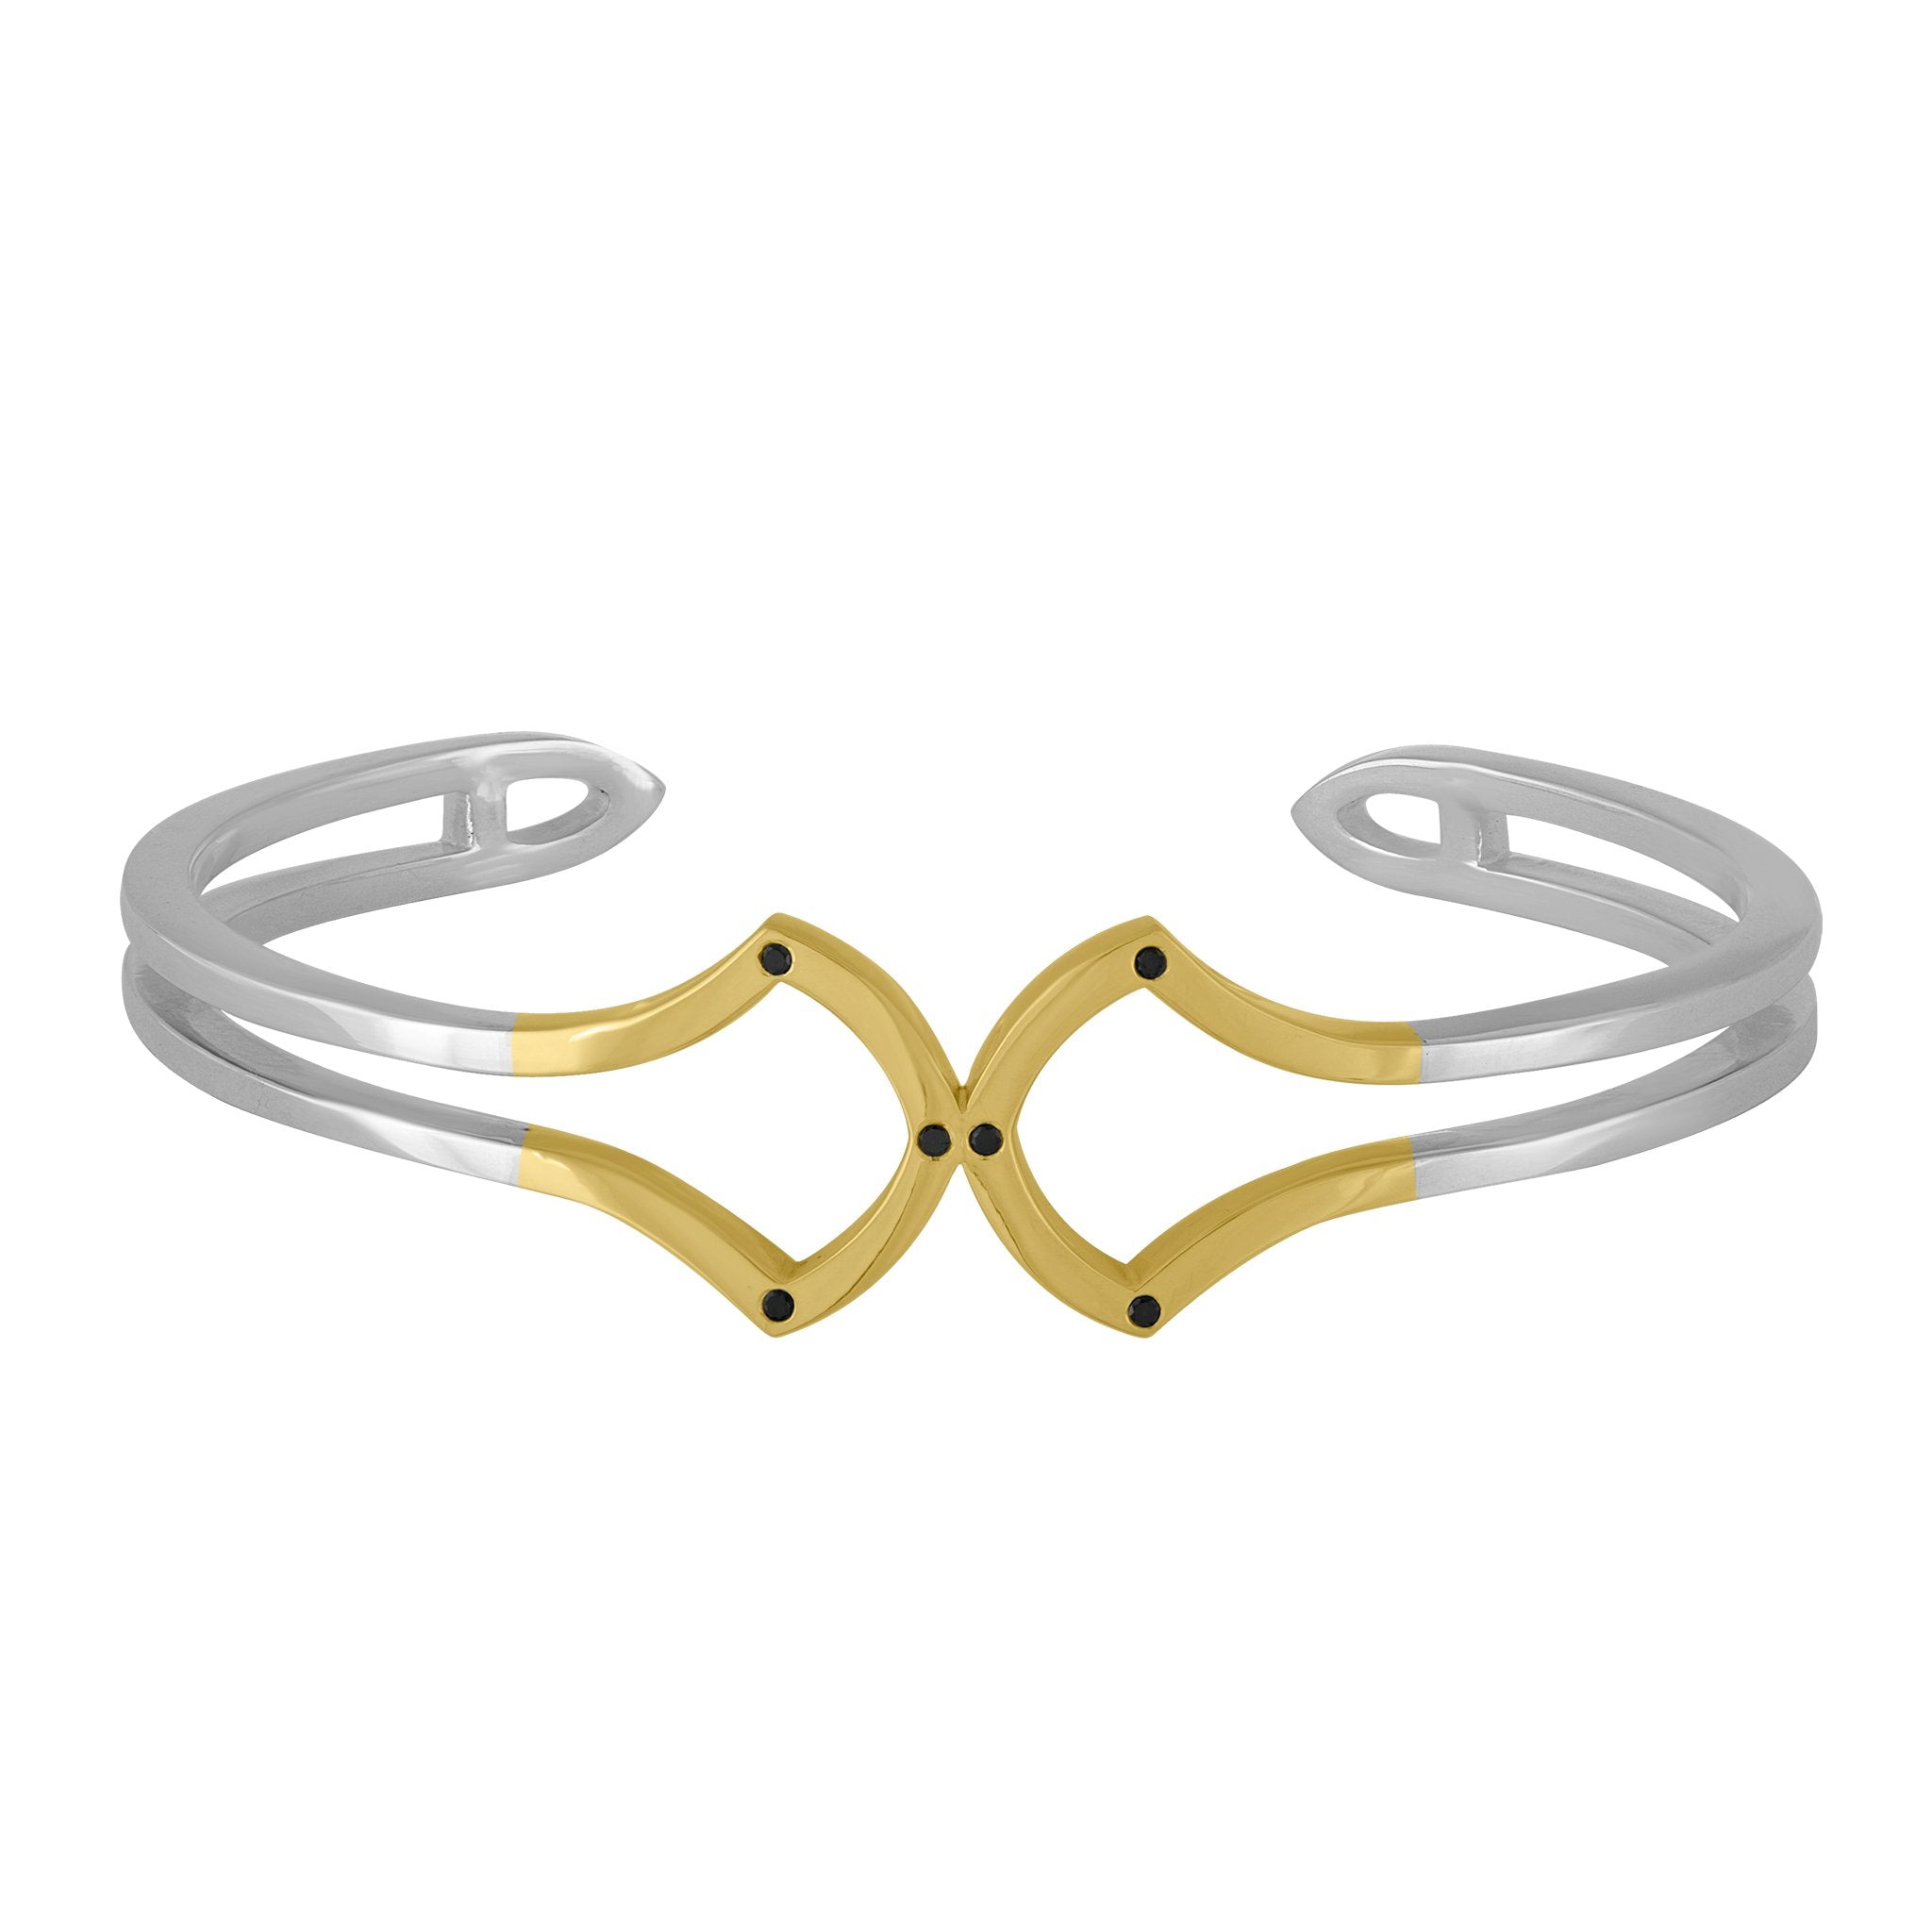 Hook Mini Cuff Bracelet: 18k Gold, Silver, Black Diamonds